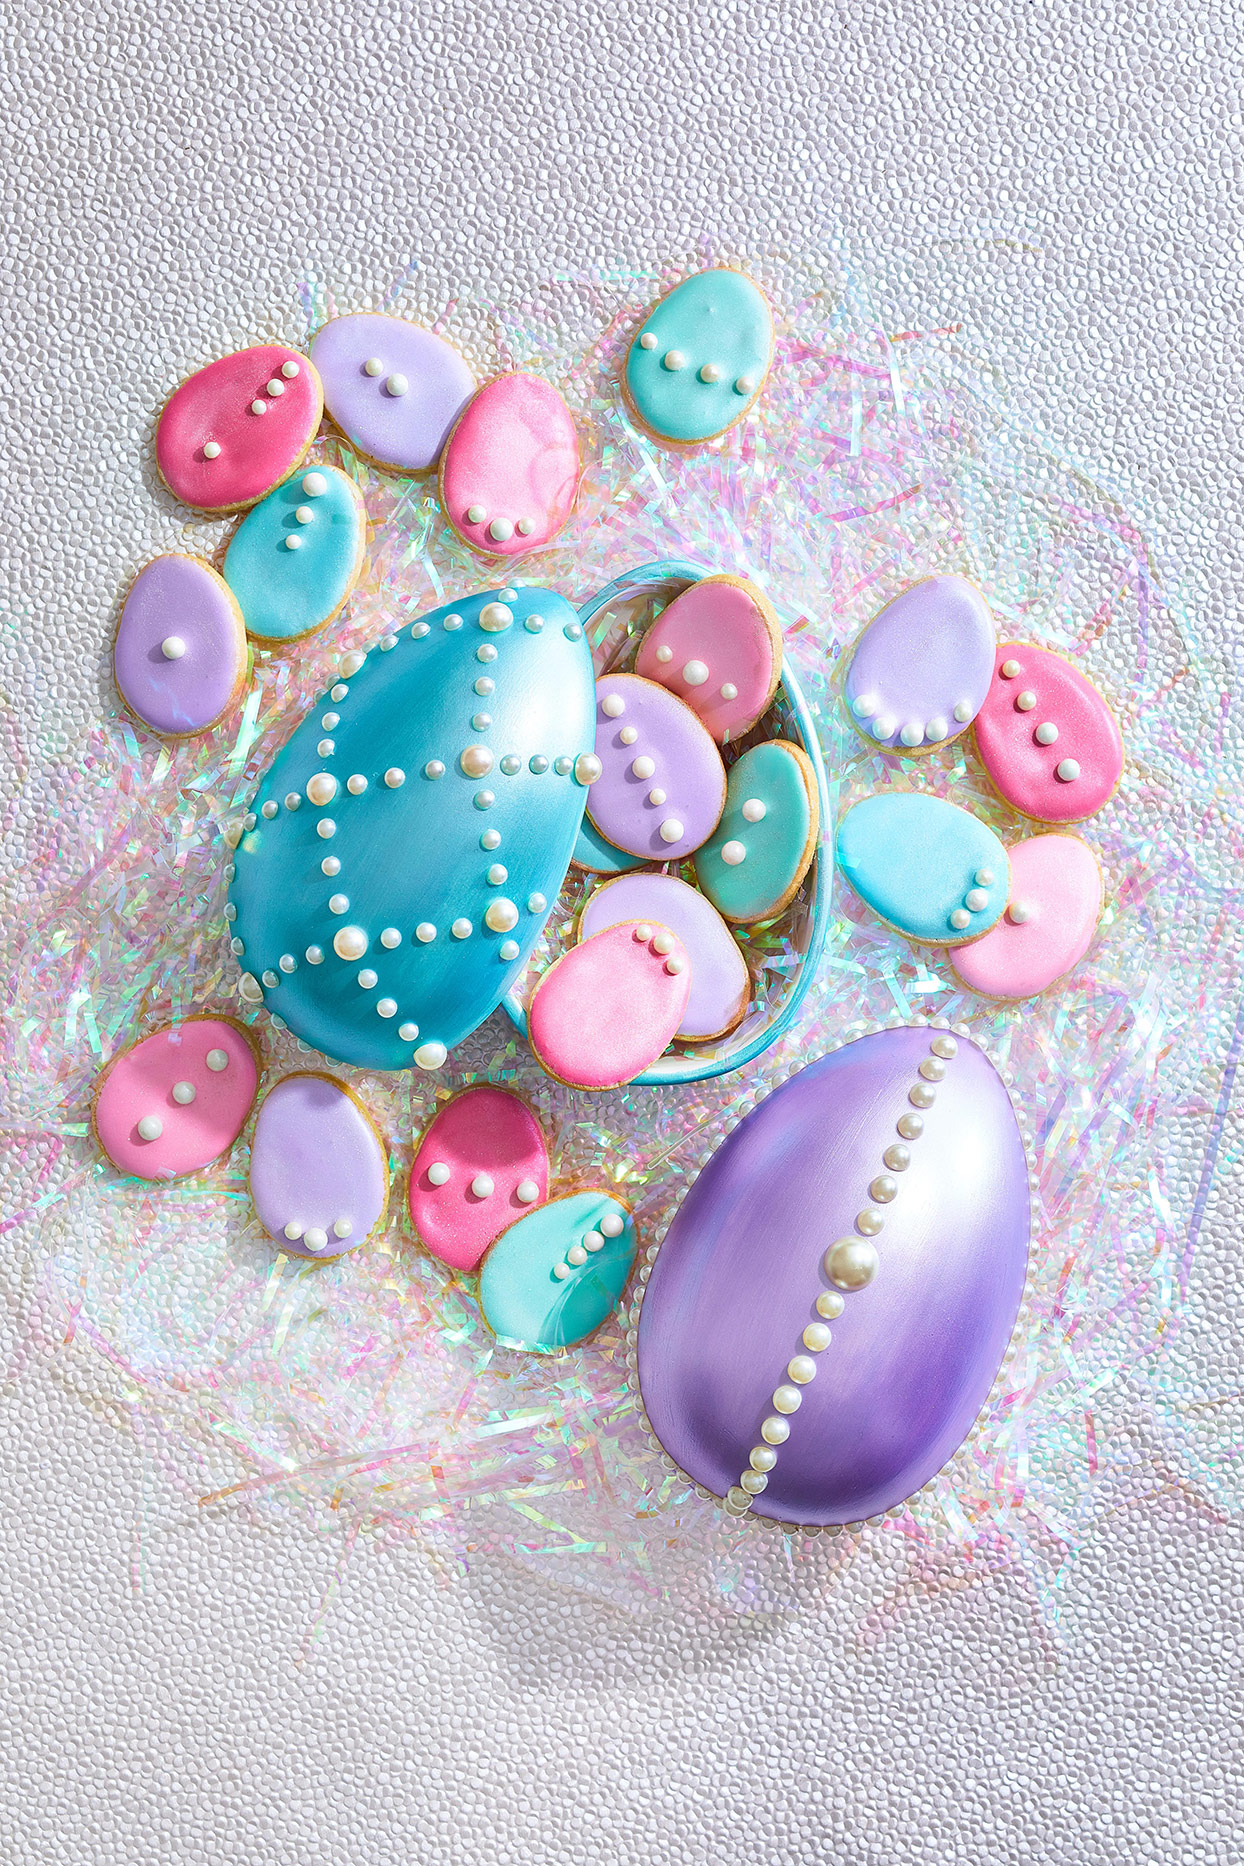 Easter egg containers holding treats